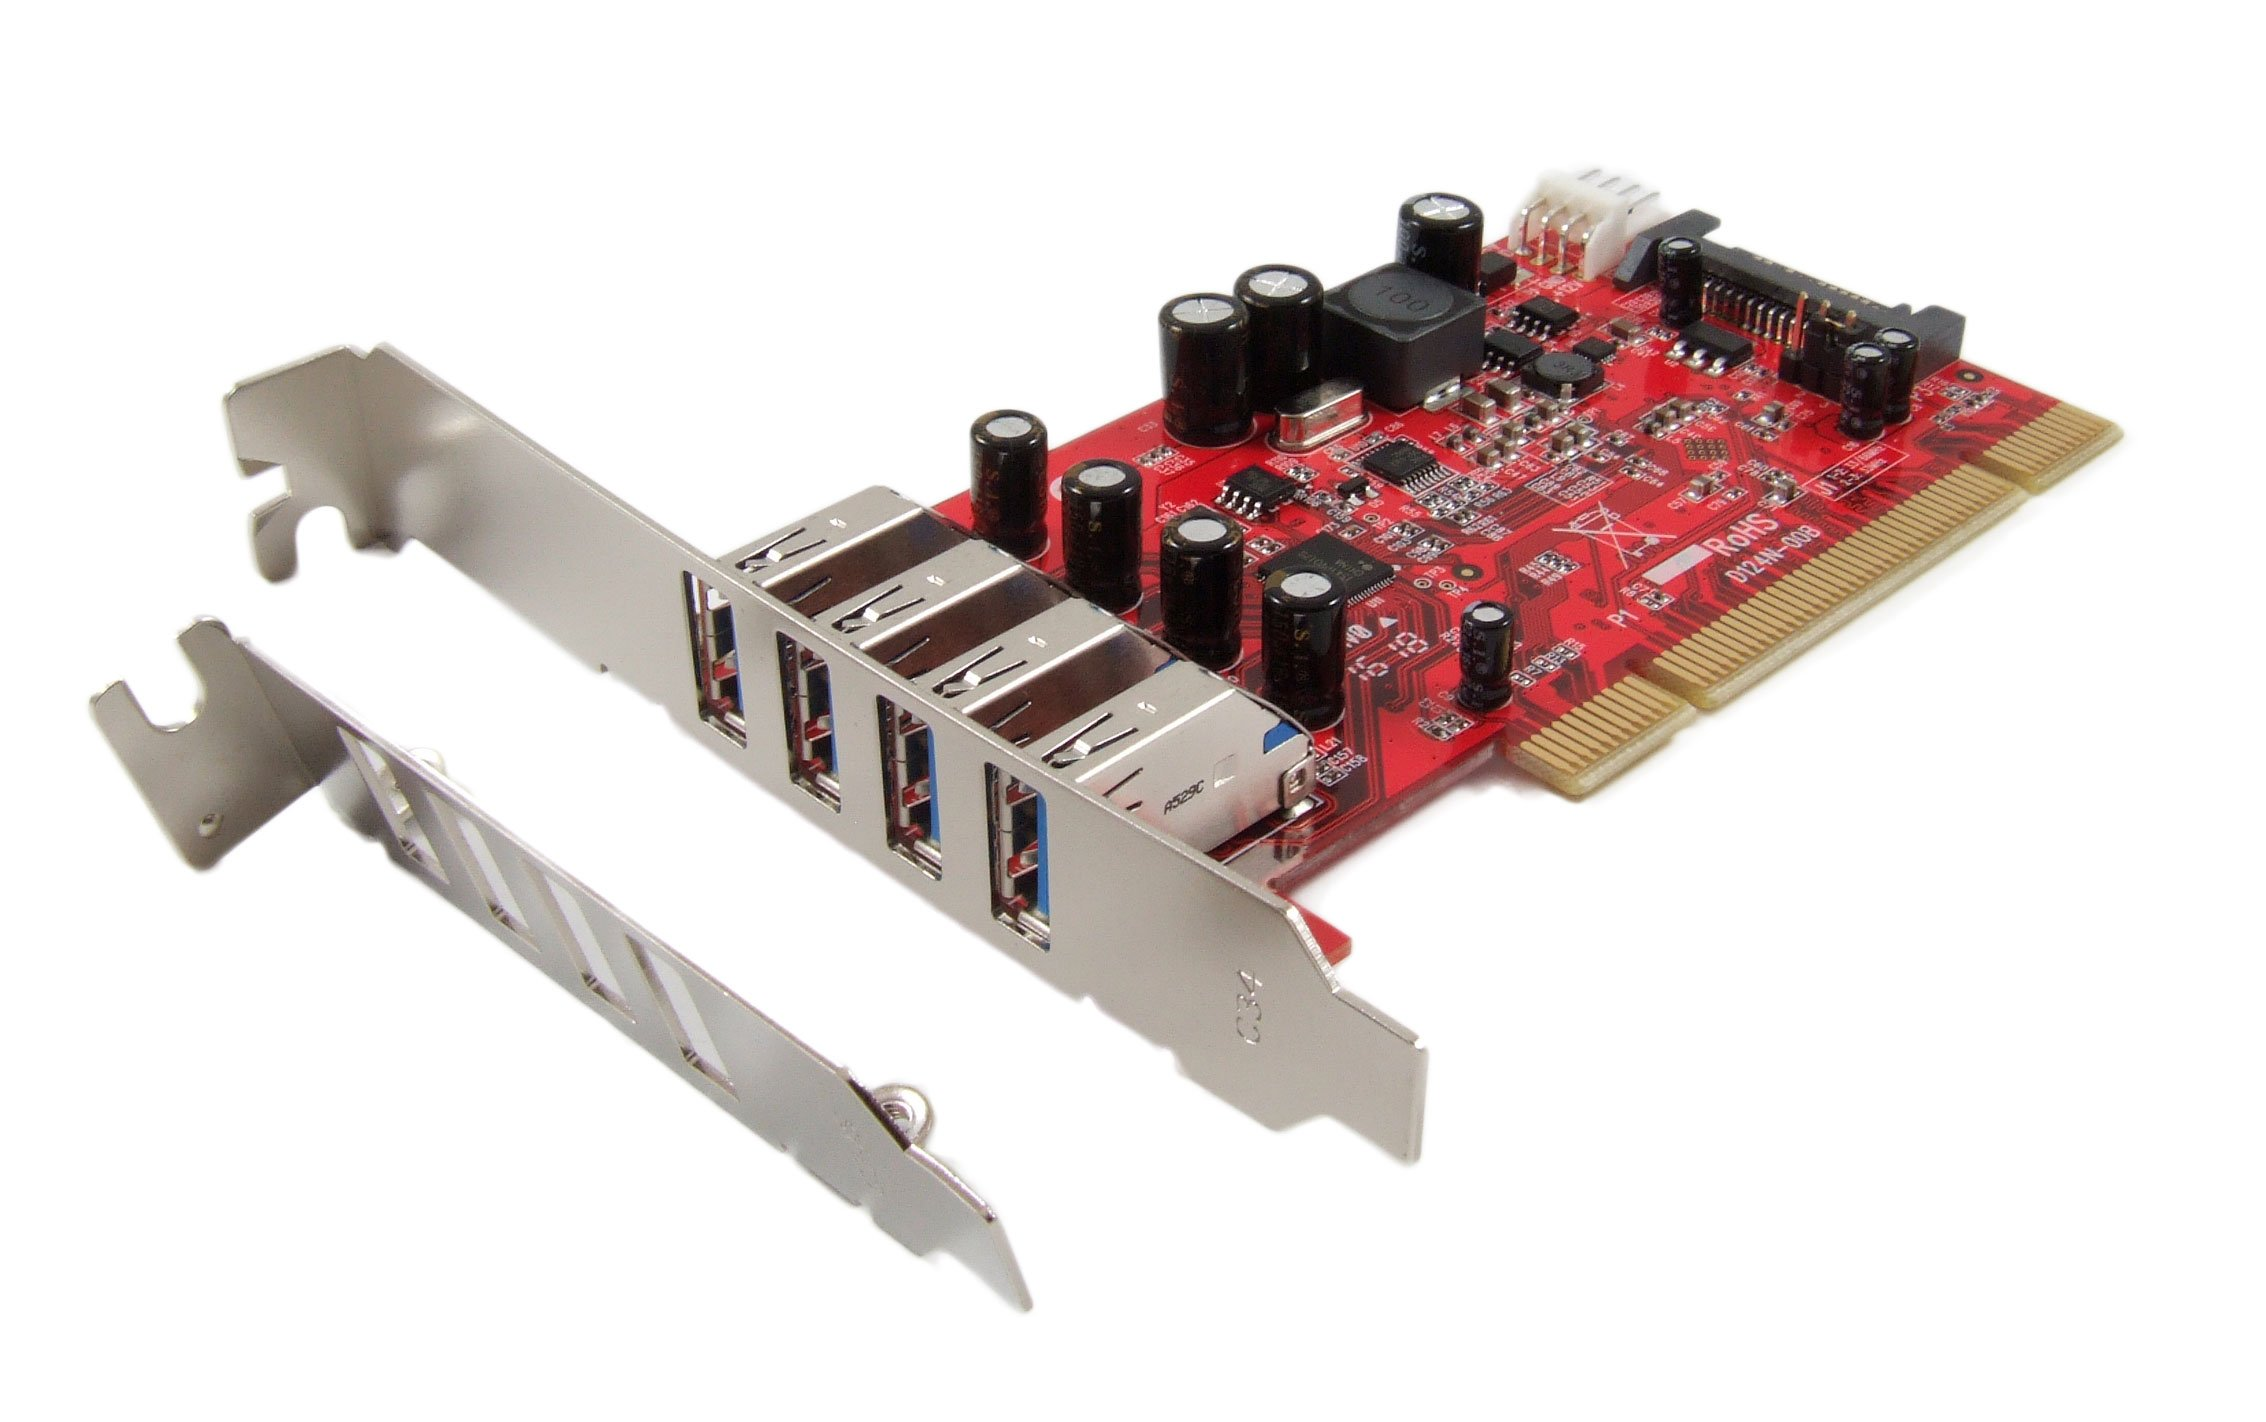 Ableconn PCI-UB124 USB 3.0 4-Port Low Profile PCI Host Adapter Card - Renesas NEC UPD720201 chipset by Ableconn